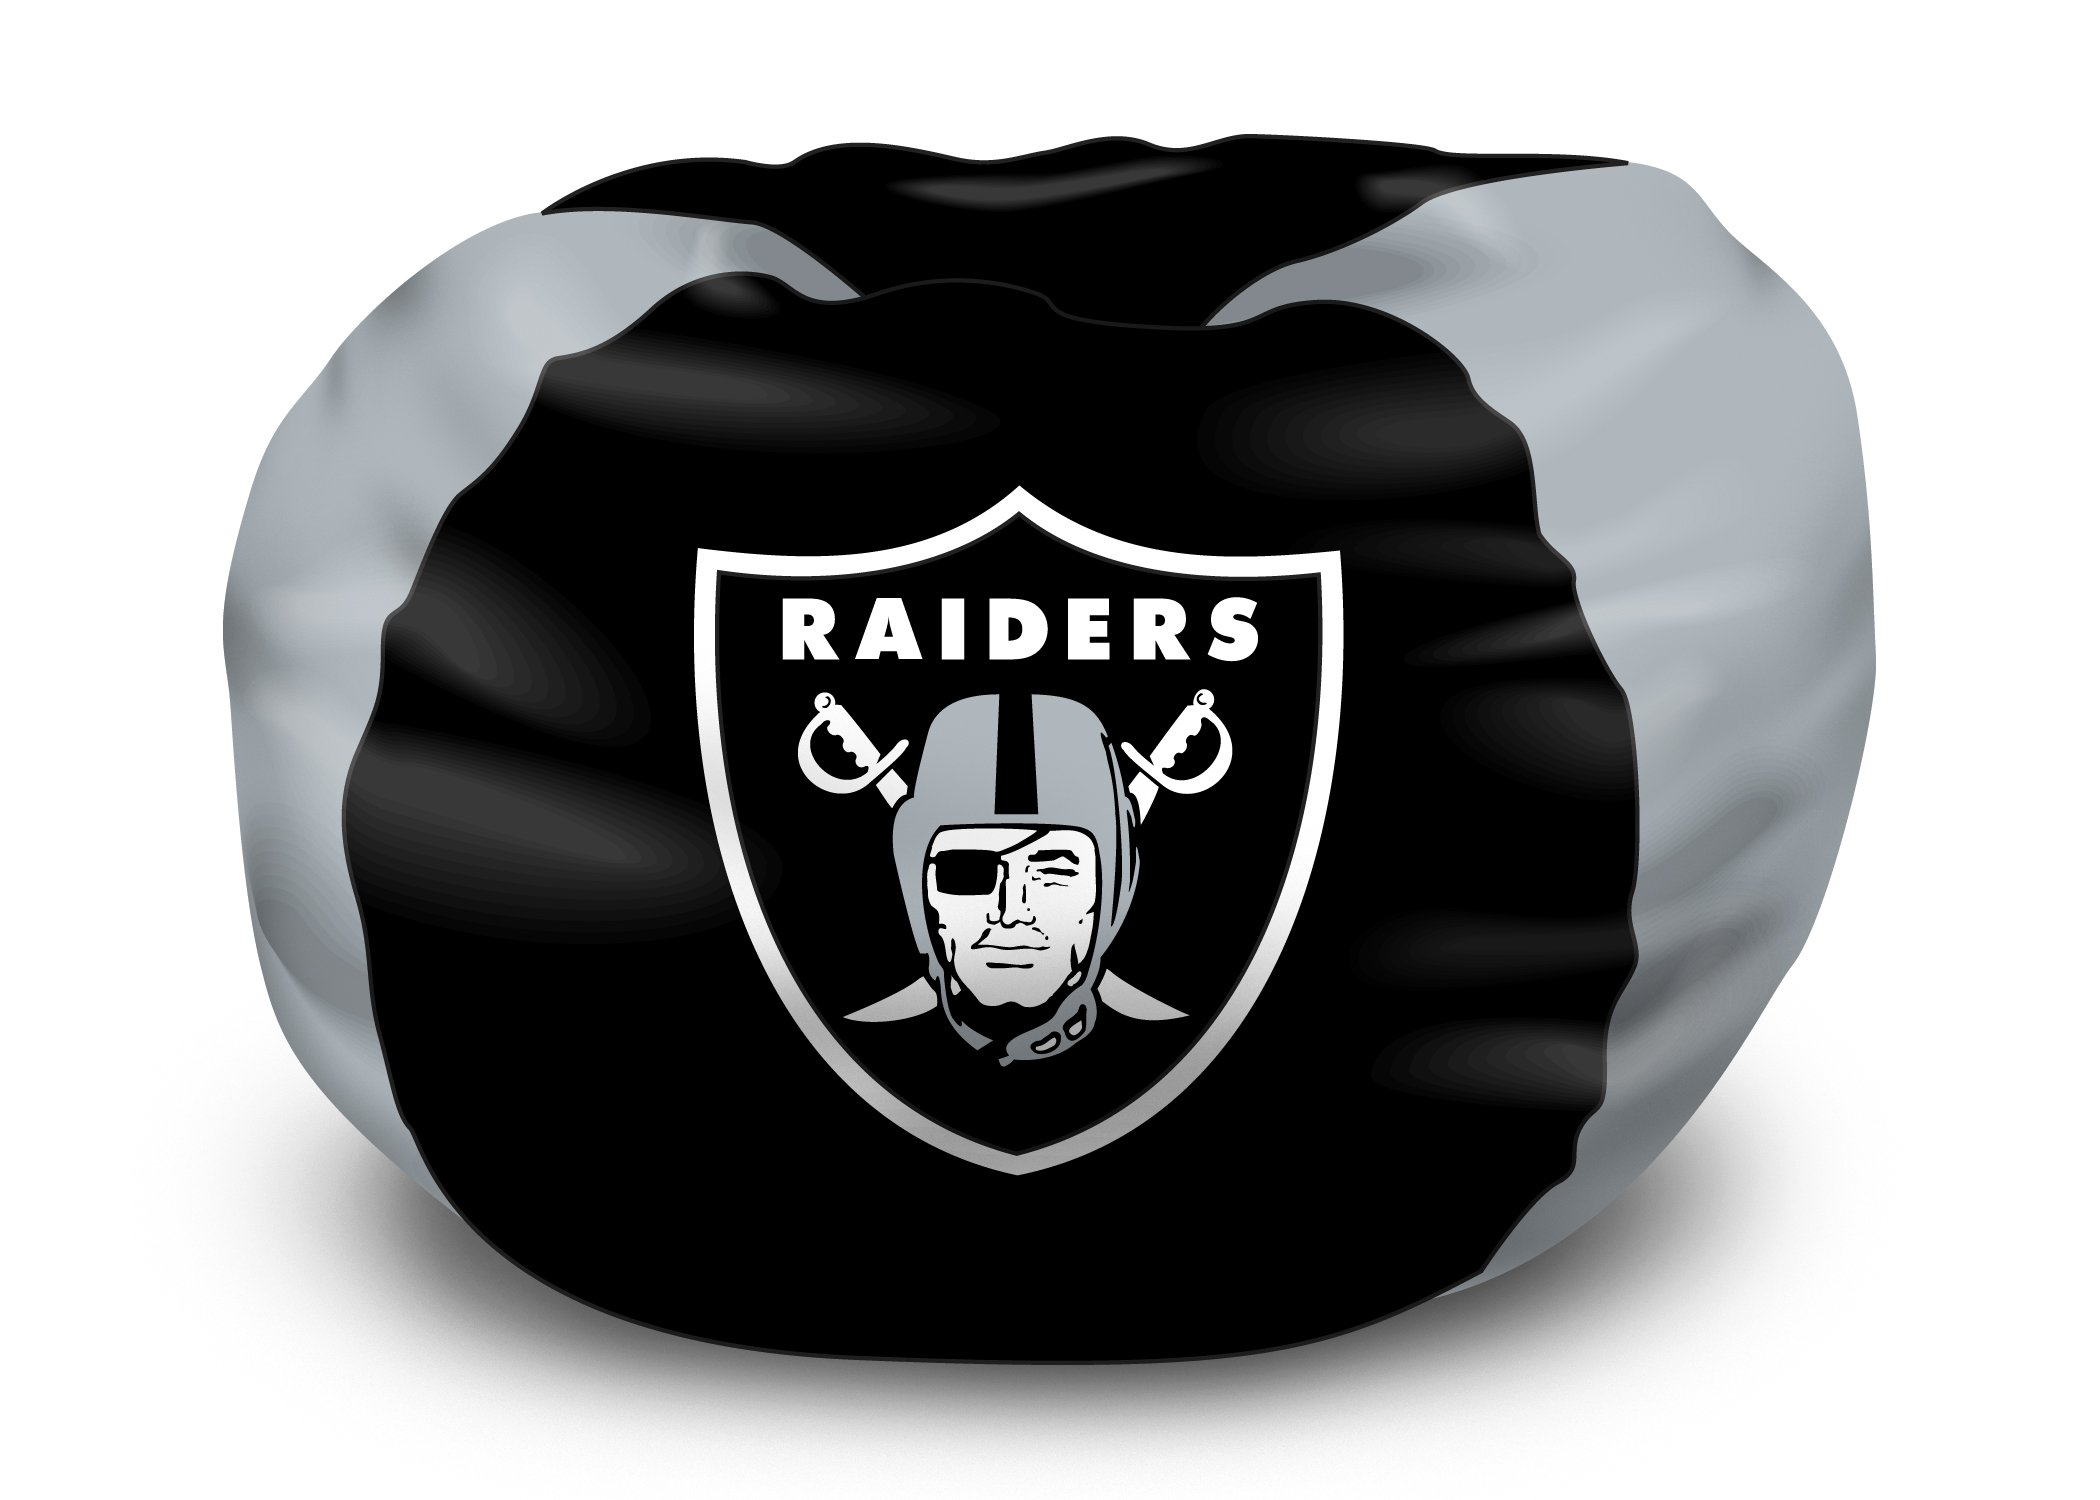 Northwest 1NFL158000019RET NFL Bean Bag Chair NFL 158 Raiders Bean Bag